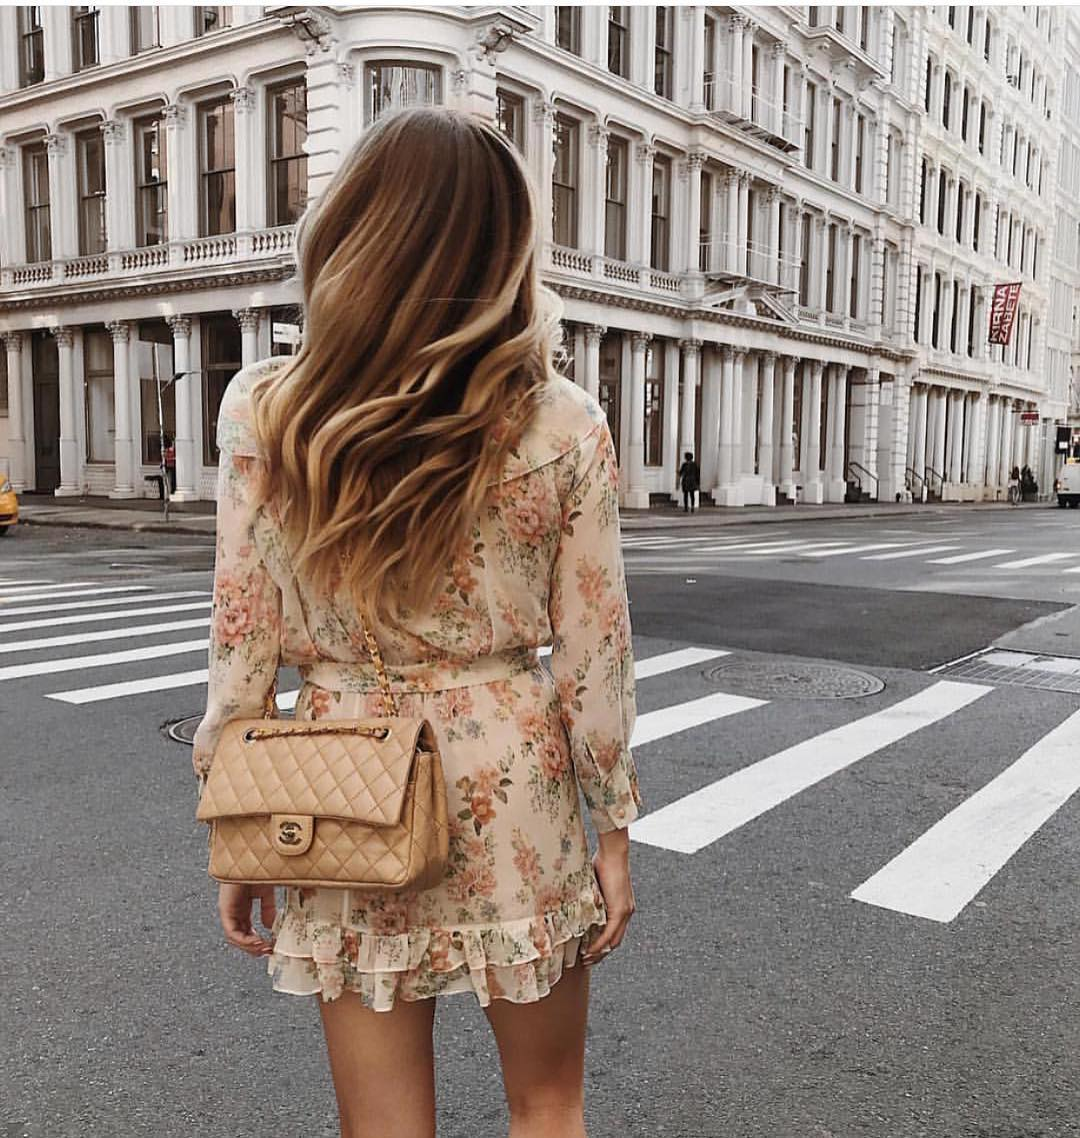 Light Beige Boho Dress In Floral Print For Summer City Street Walks 2019